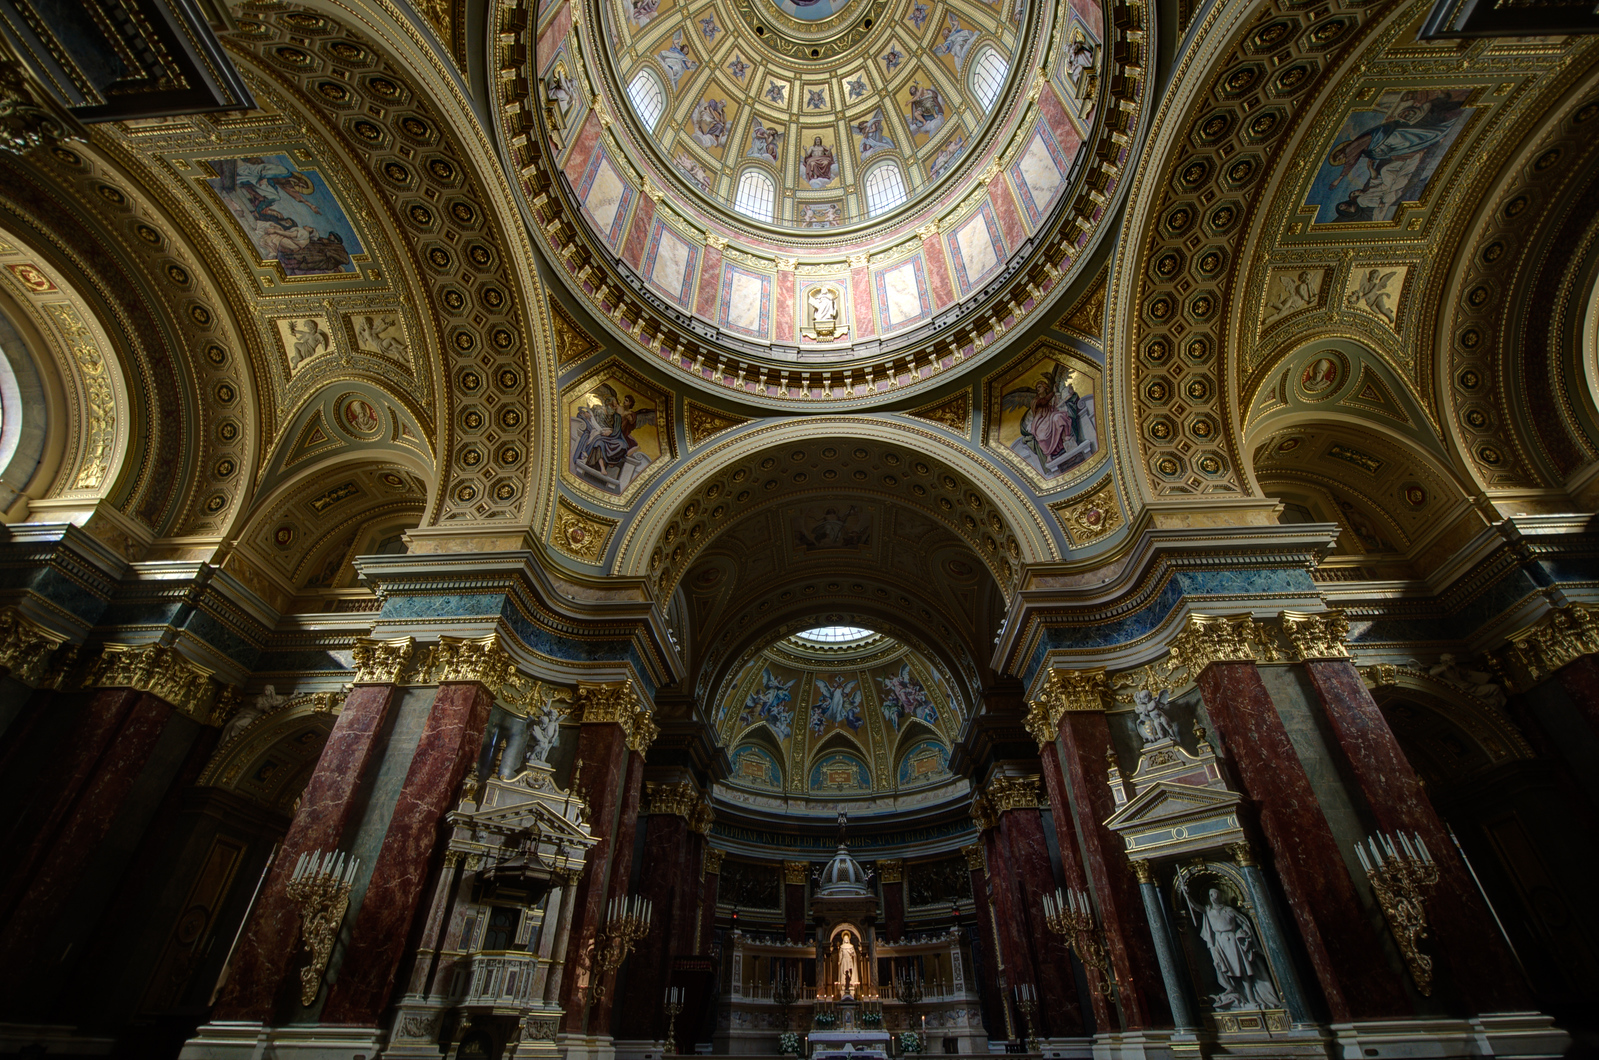 Interior details at St. Peter's Basilica in Budapest, Hungary